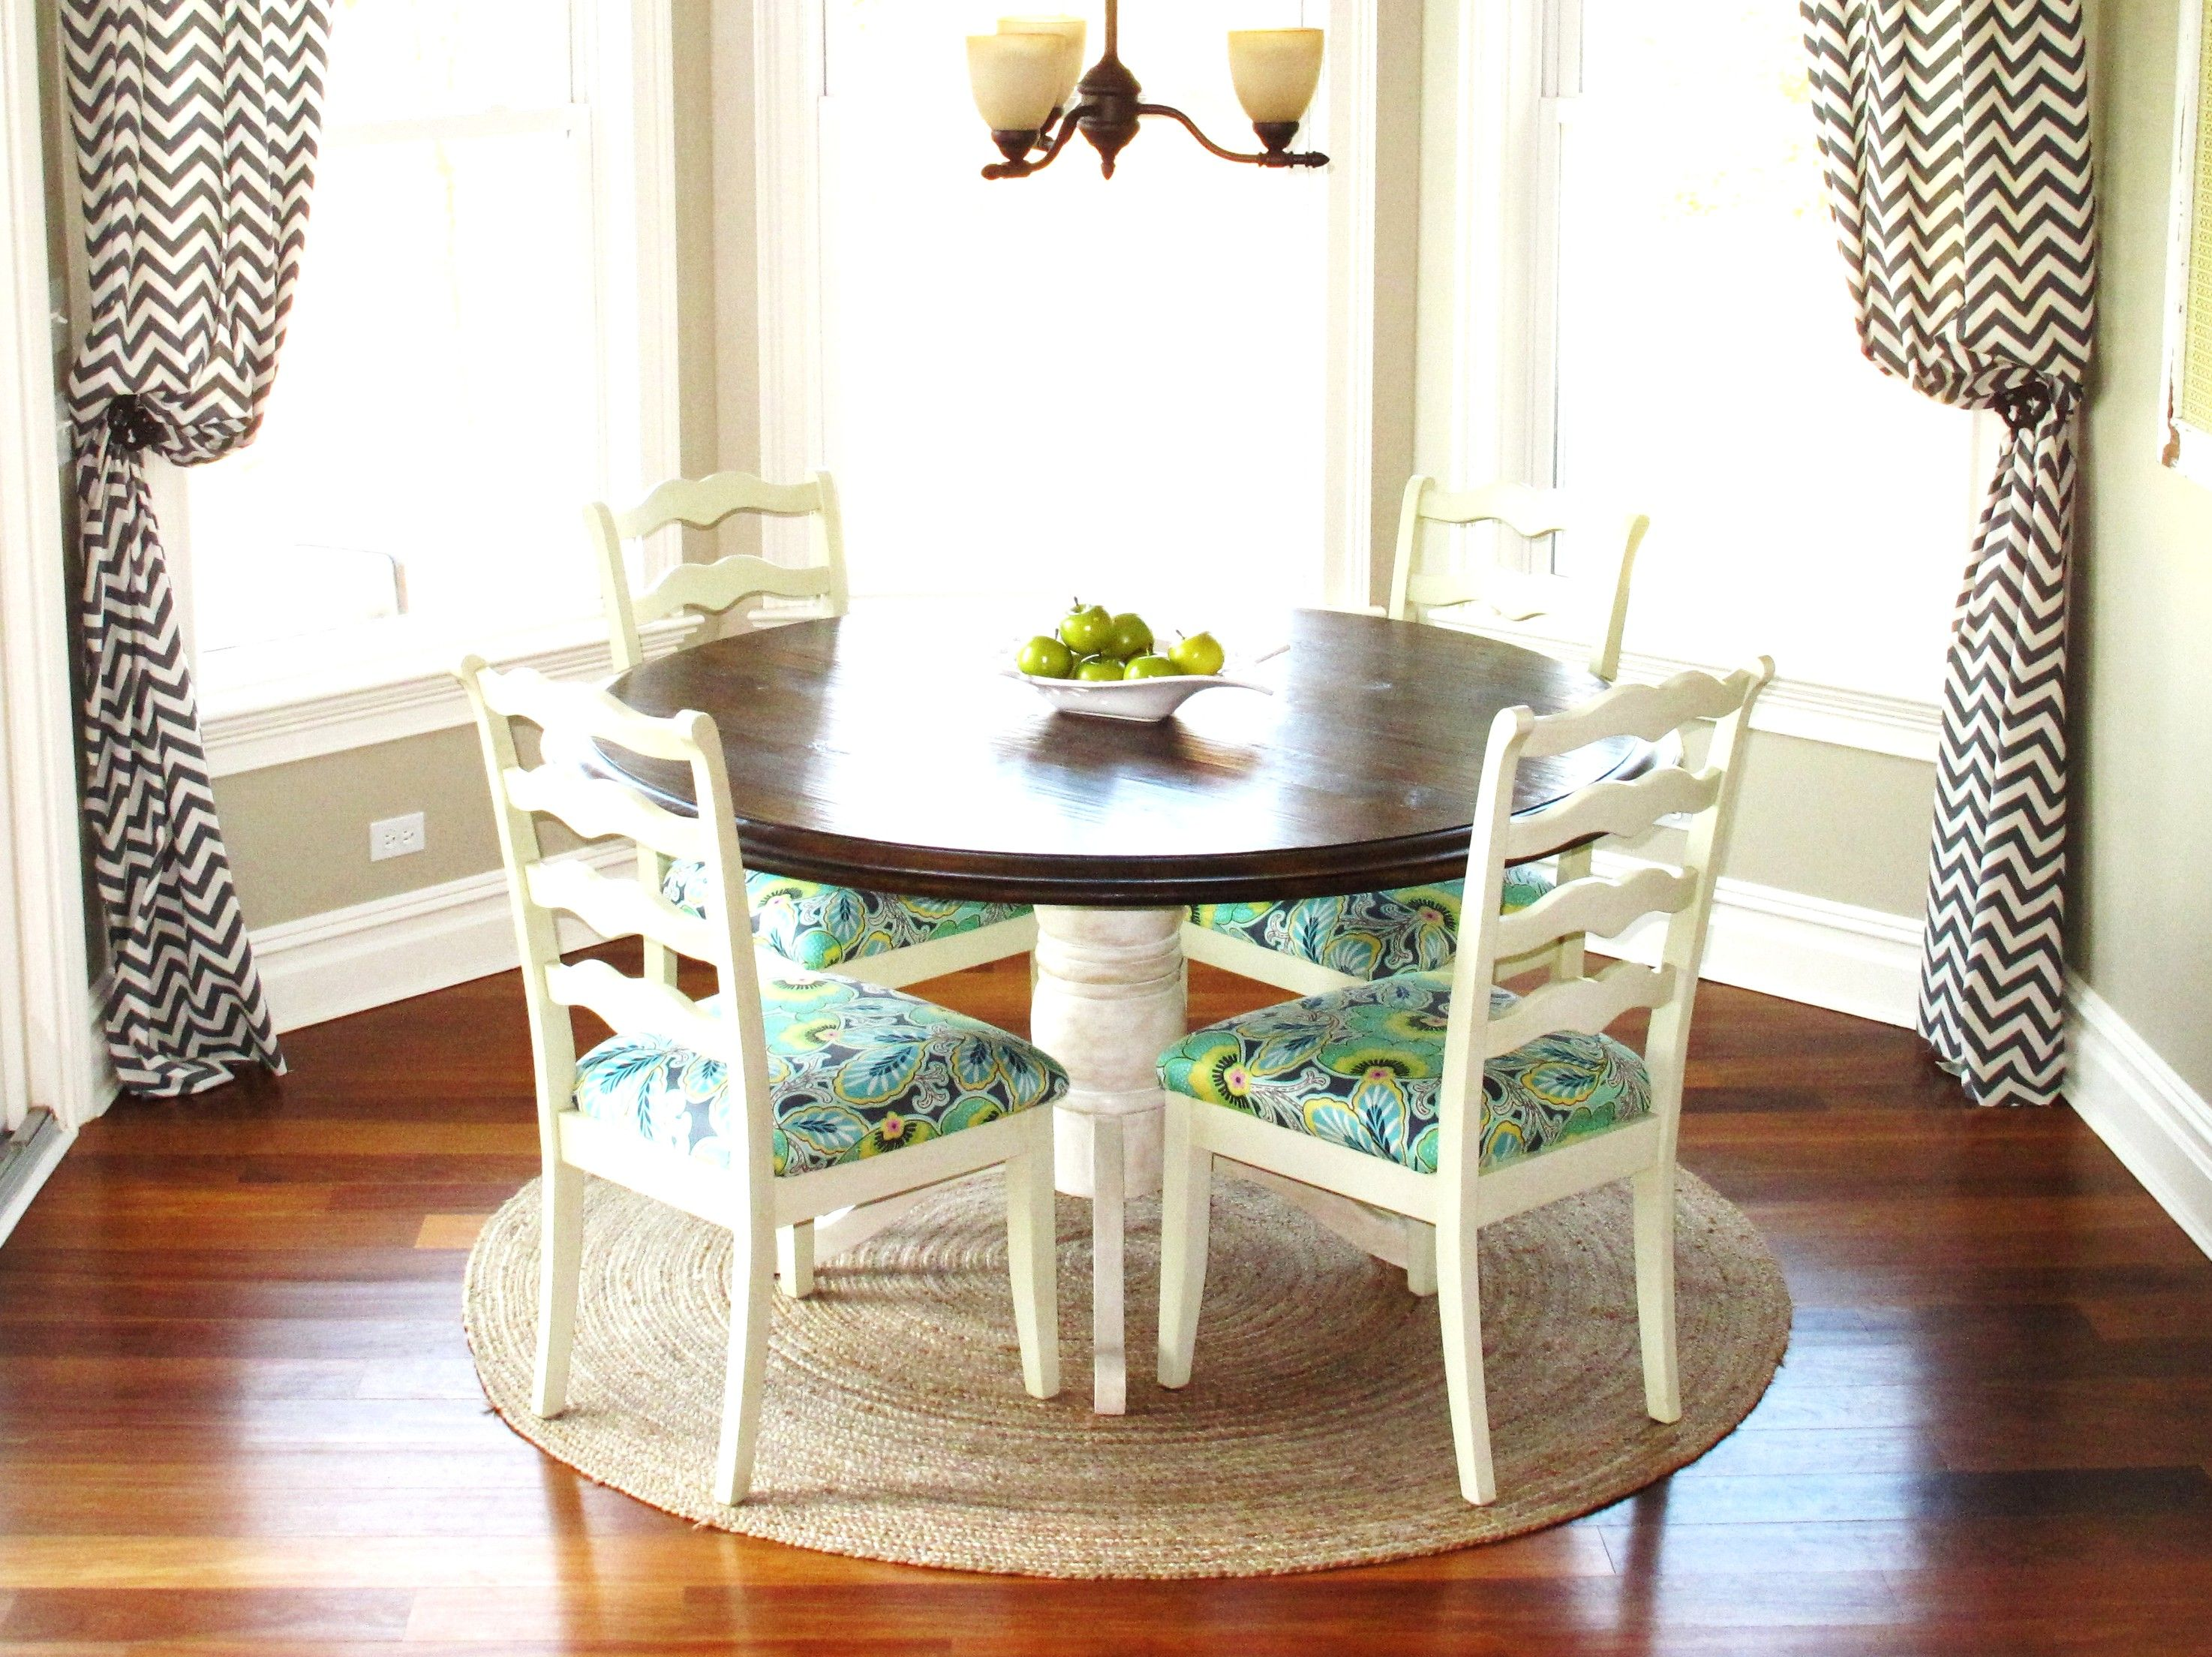 design most bench room with traditional ideas extraordinary inspiration idea chip homey borse nook treatment bay banquette windows dining treatments kitchen miu blue homes window